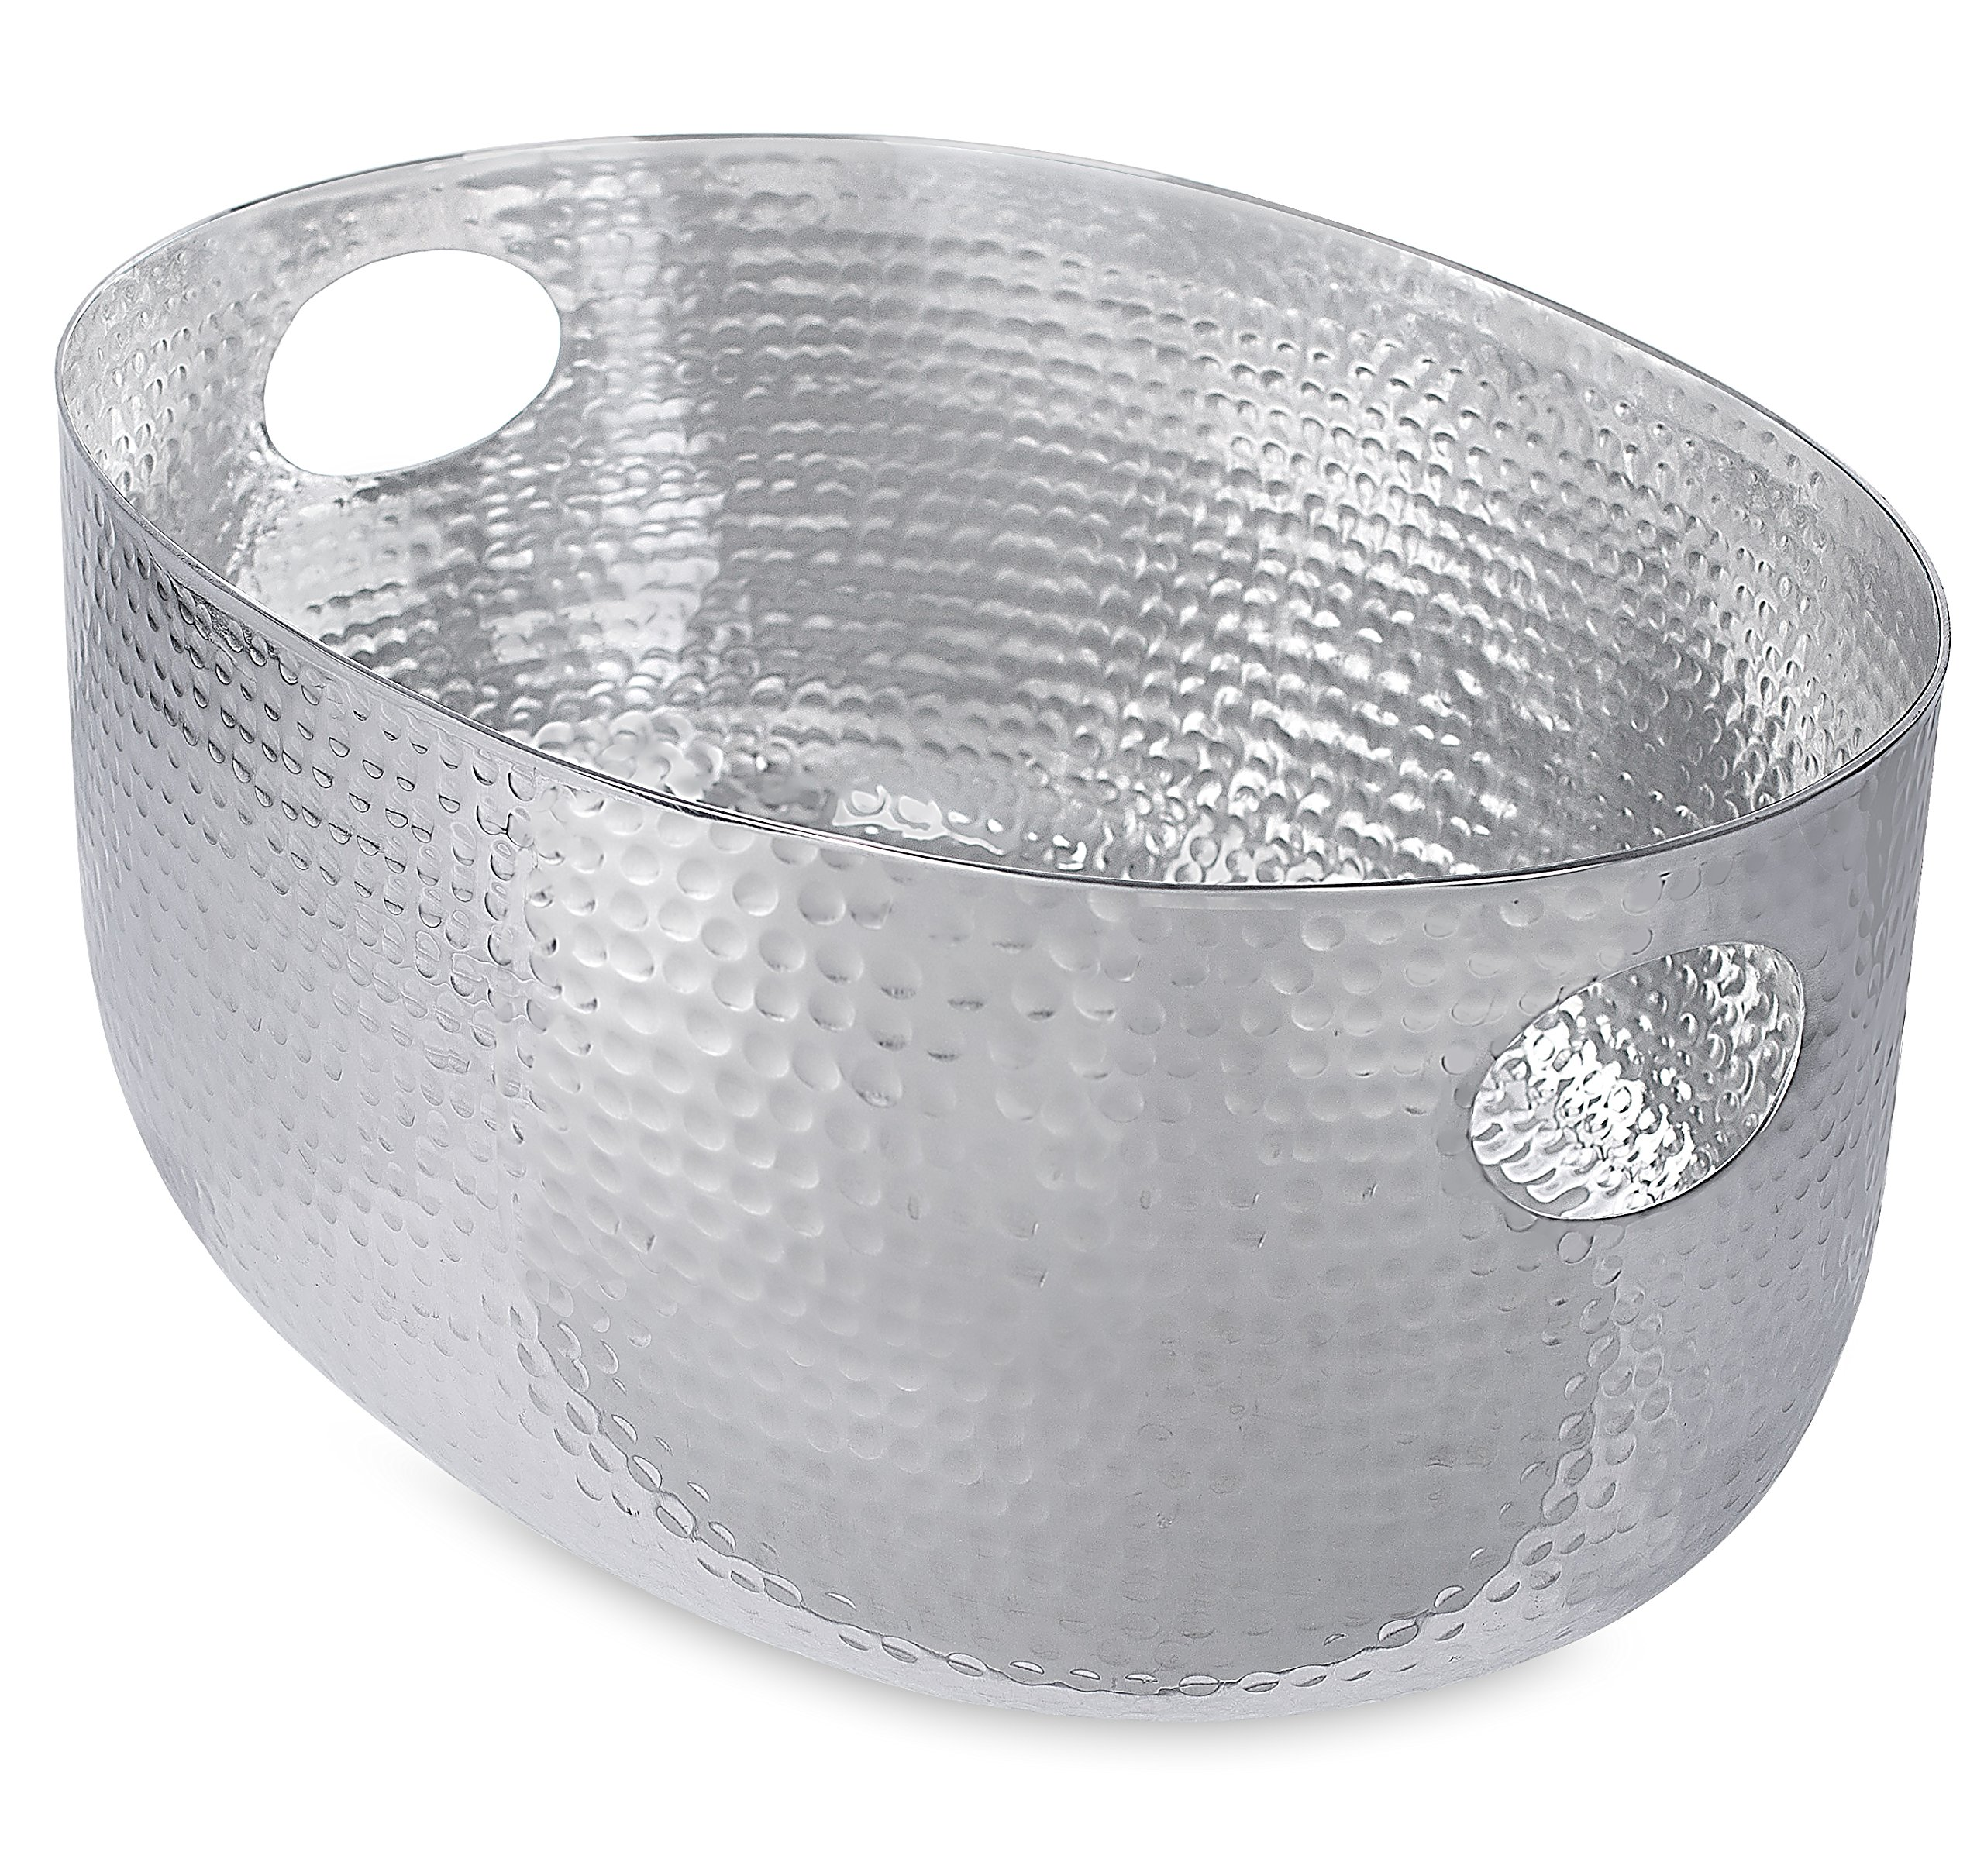 BirdRock Home Hammered Stainless Steel Beverage Tub | Oval | Party Drink Cooler Holder | Cutout Handles | Outdoor Indoor Use